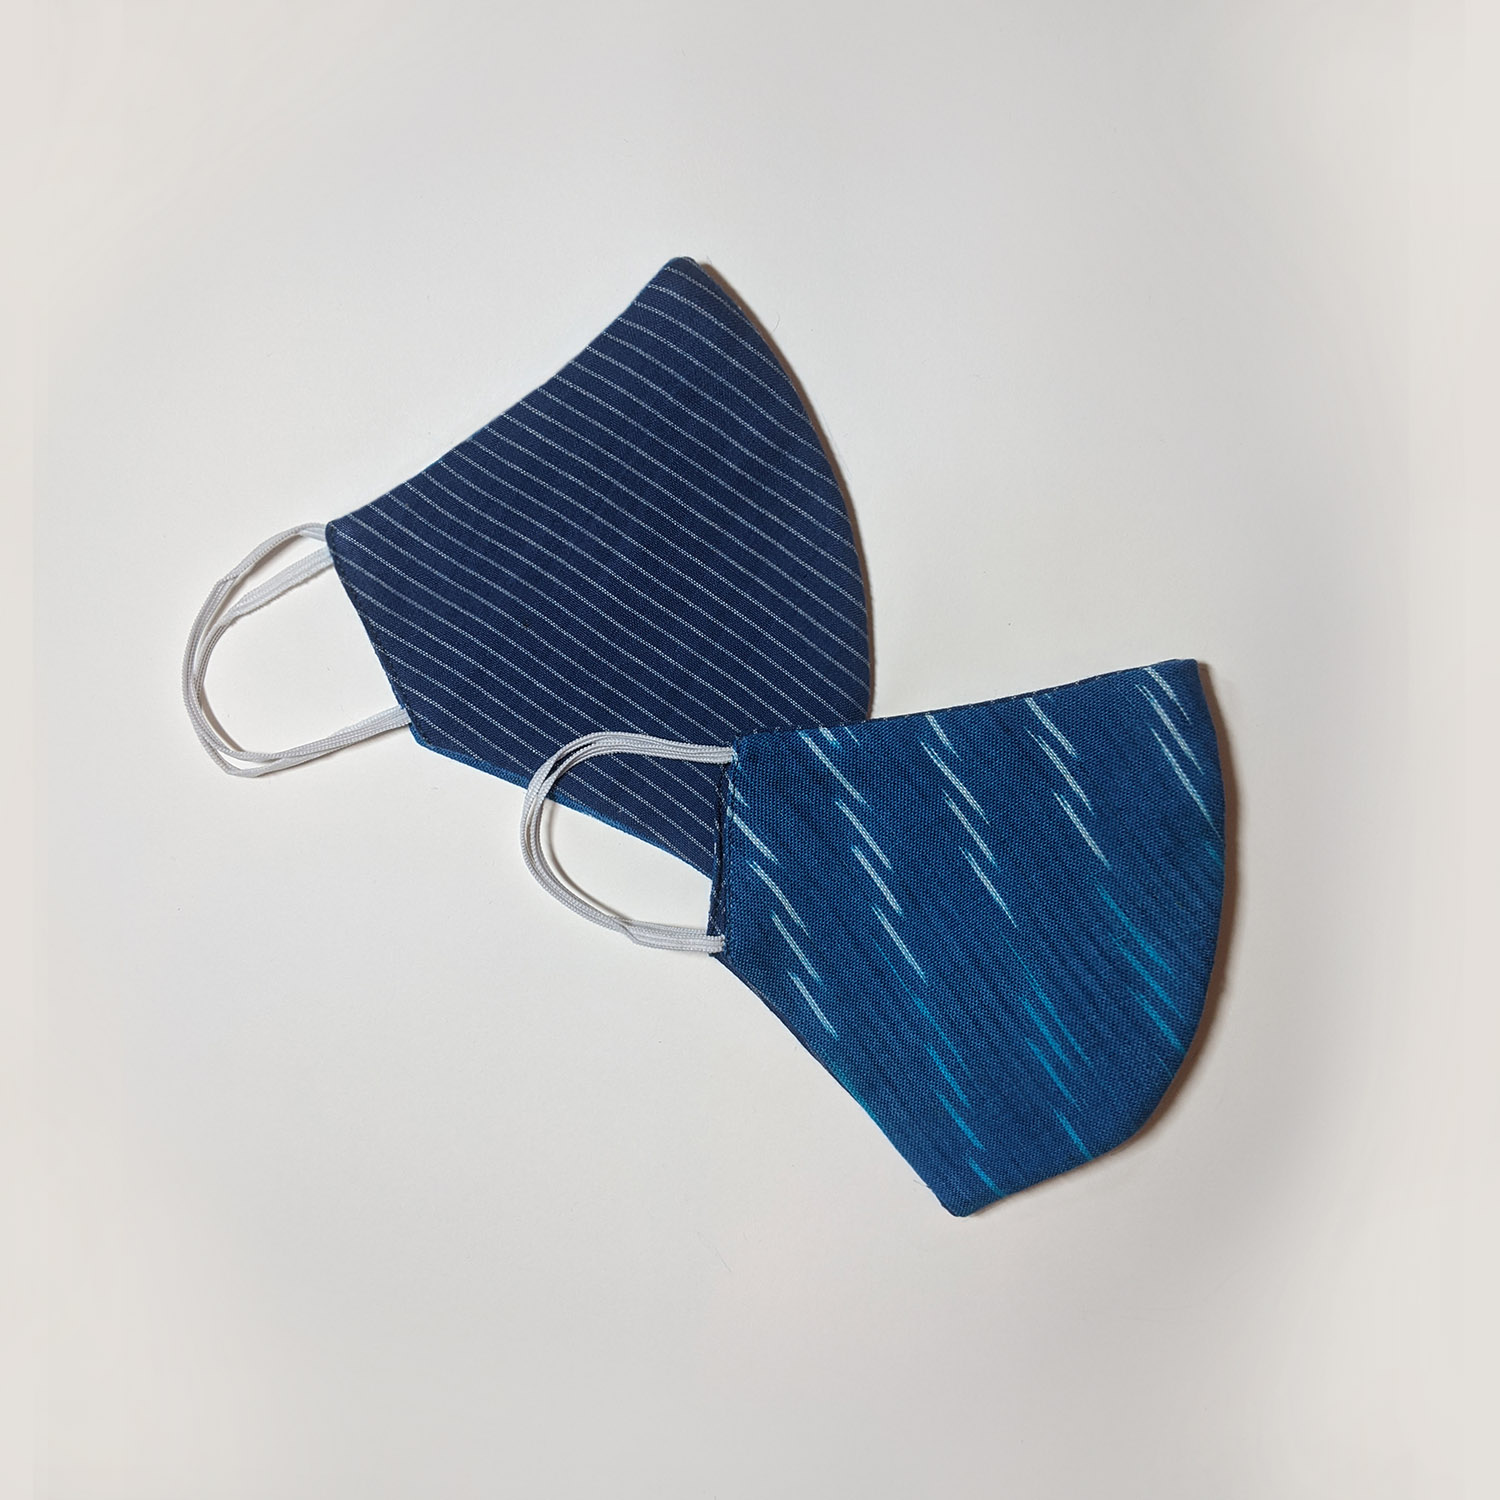 Cobalt Blue Ikat & Pinstripe Reversible Face Mask (Set of 2)